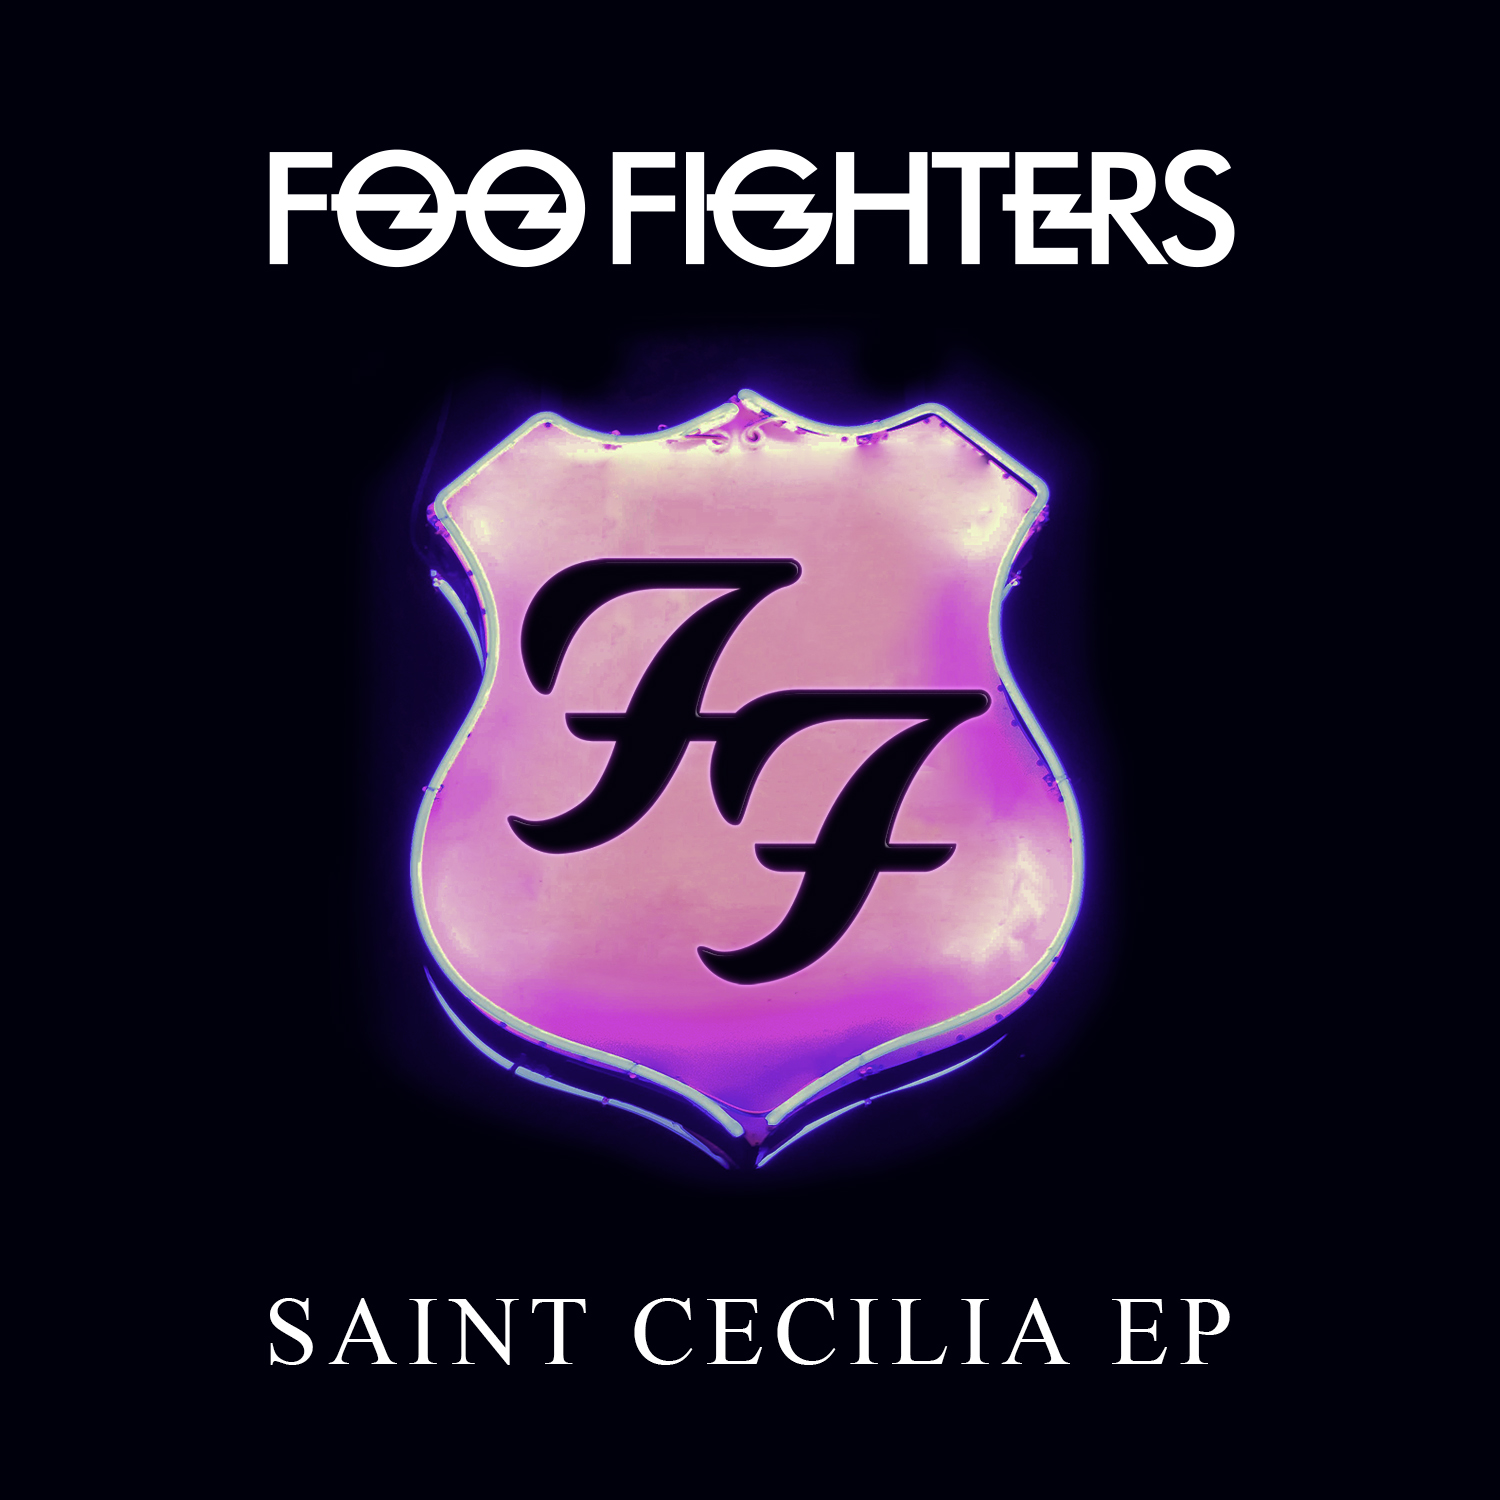 Foo Fighters Music Downloads Free